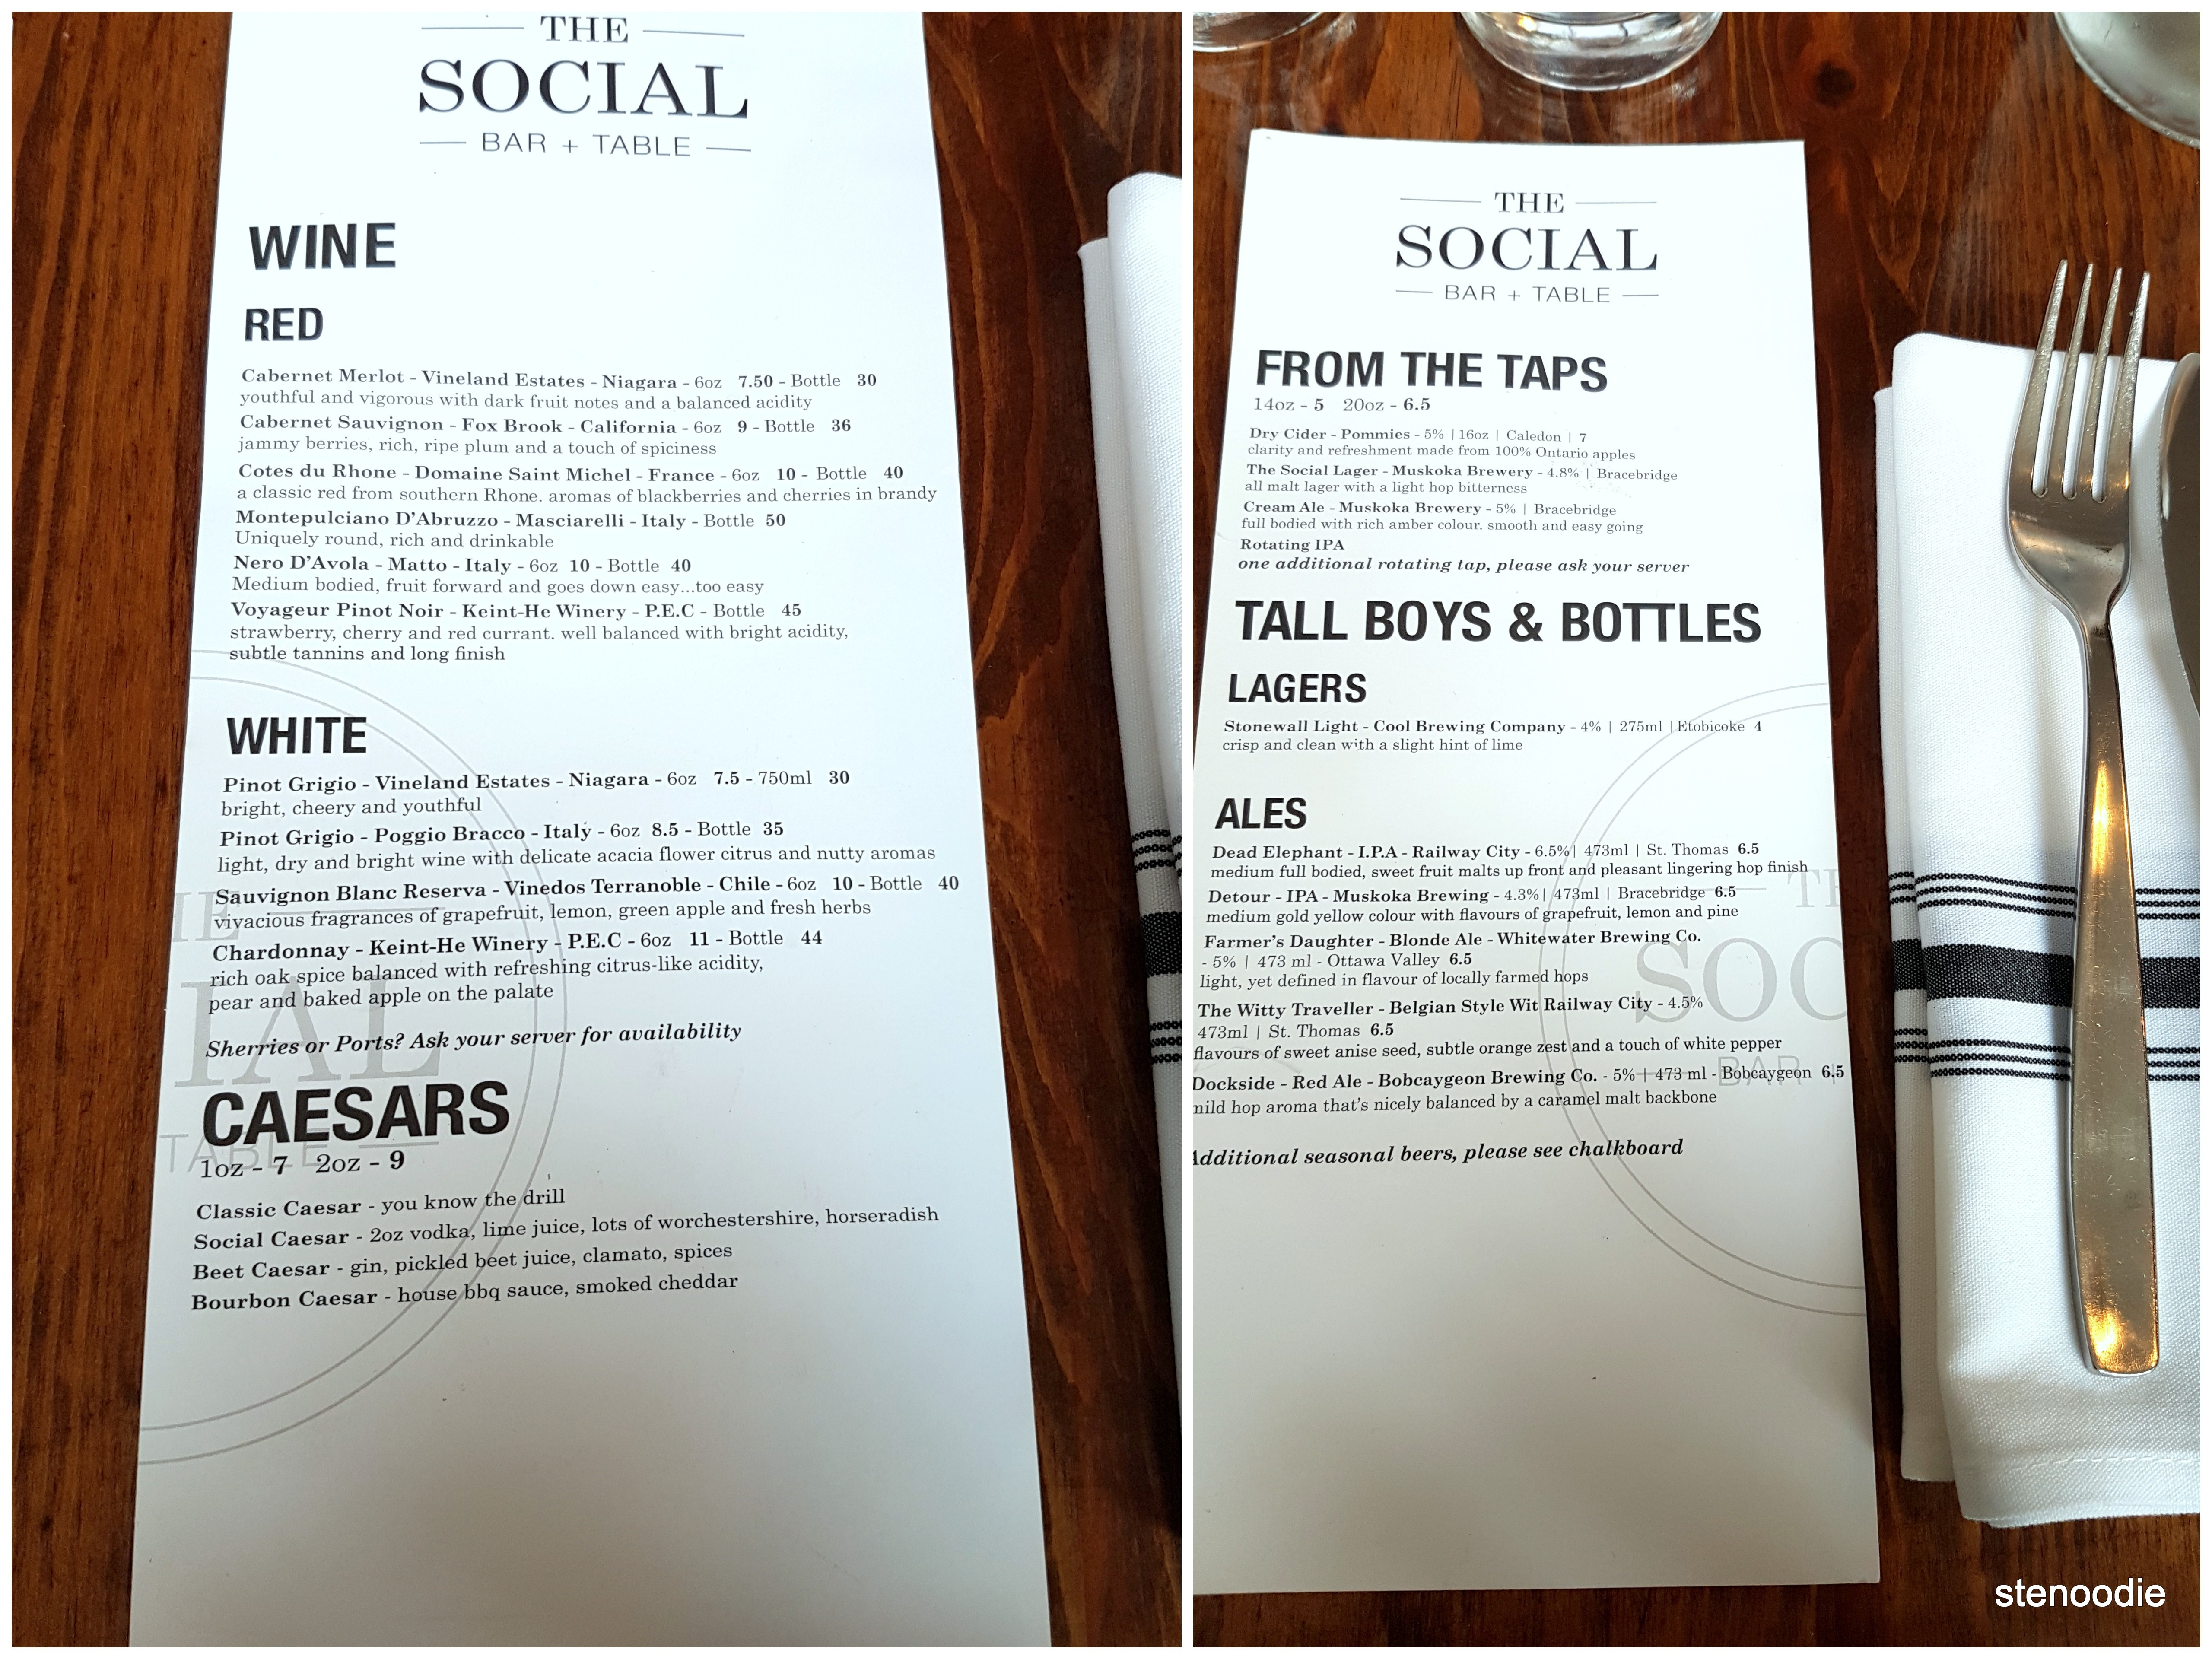 The Social Bar and Table drinks menu and prices